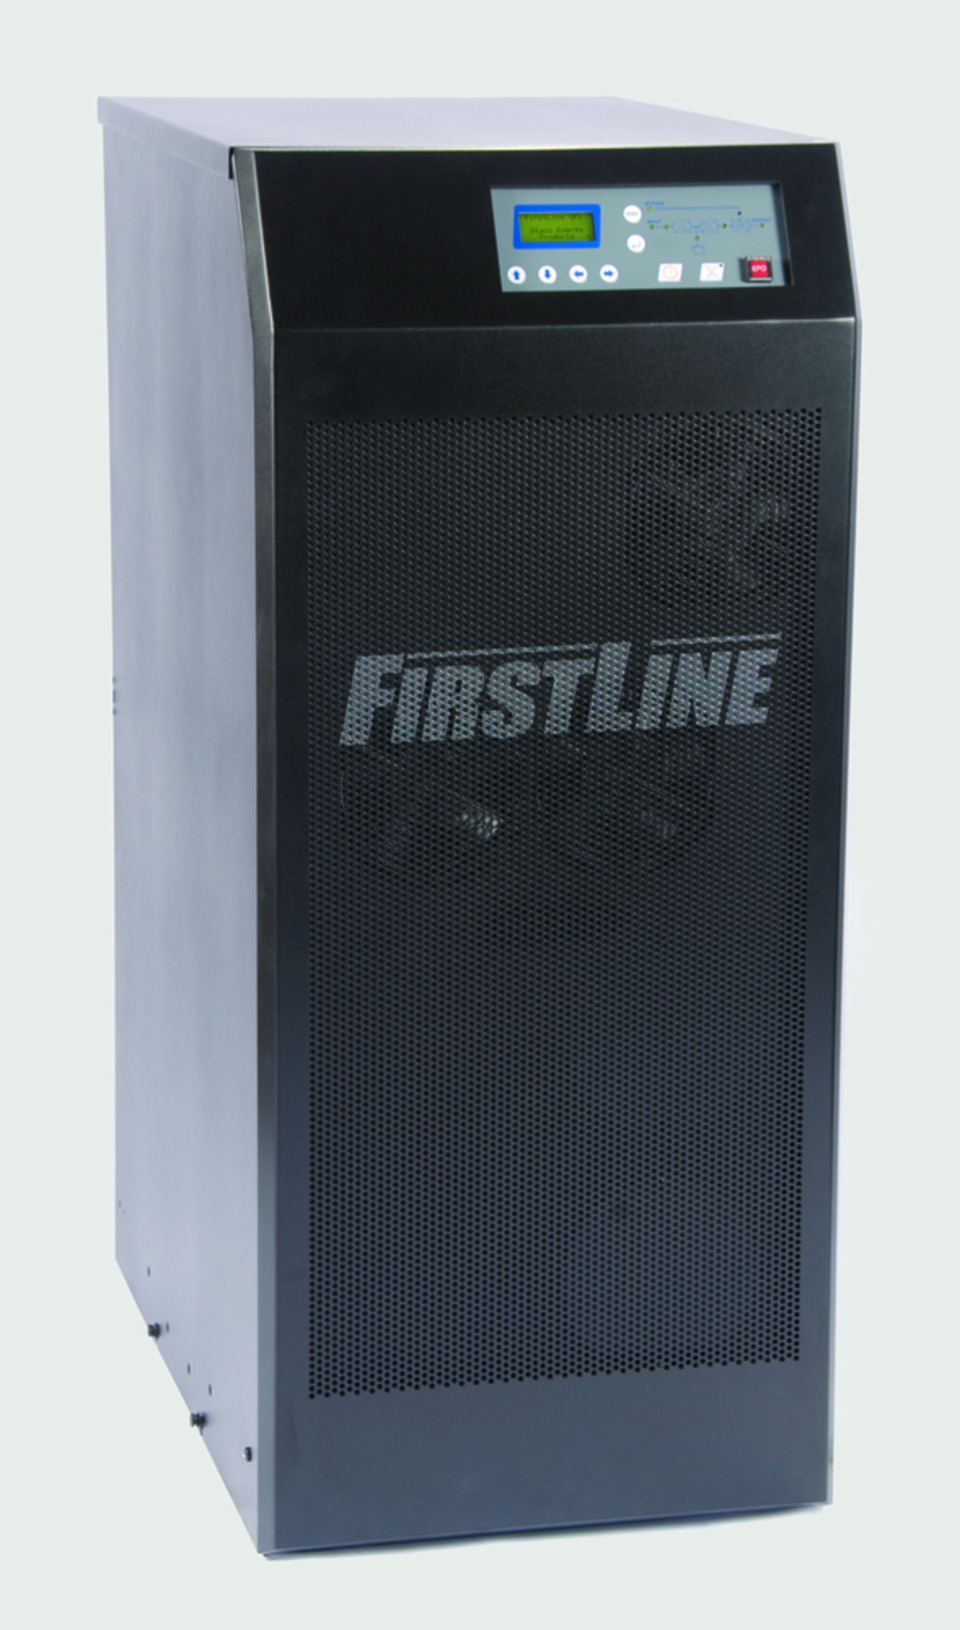 Staco Energy Products Co Flu 10s Three Phase Uninterruptible Power This Standard Cord Is Commonly Usedby Pc Supplies And Many Has Introduced The A Second Generation To Its Firstline 10kva Supply Ups